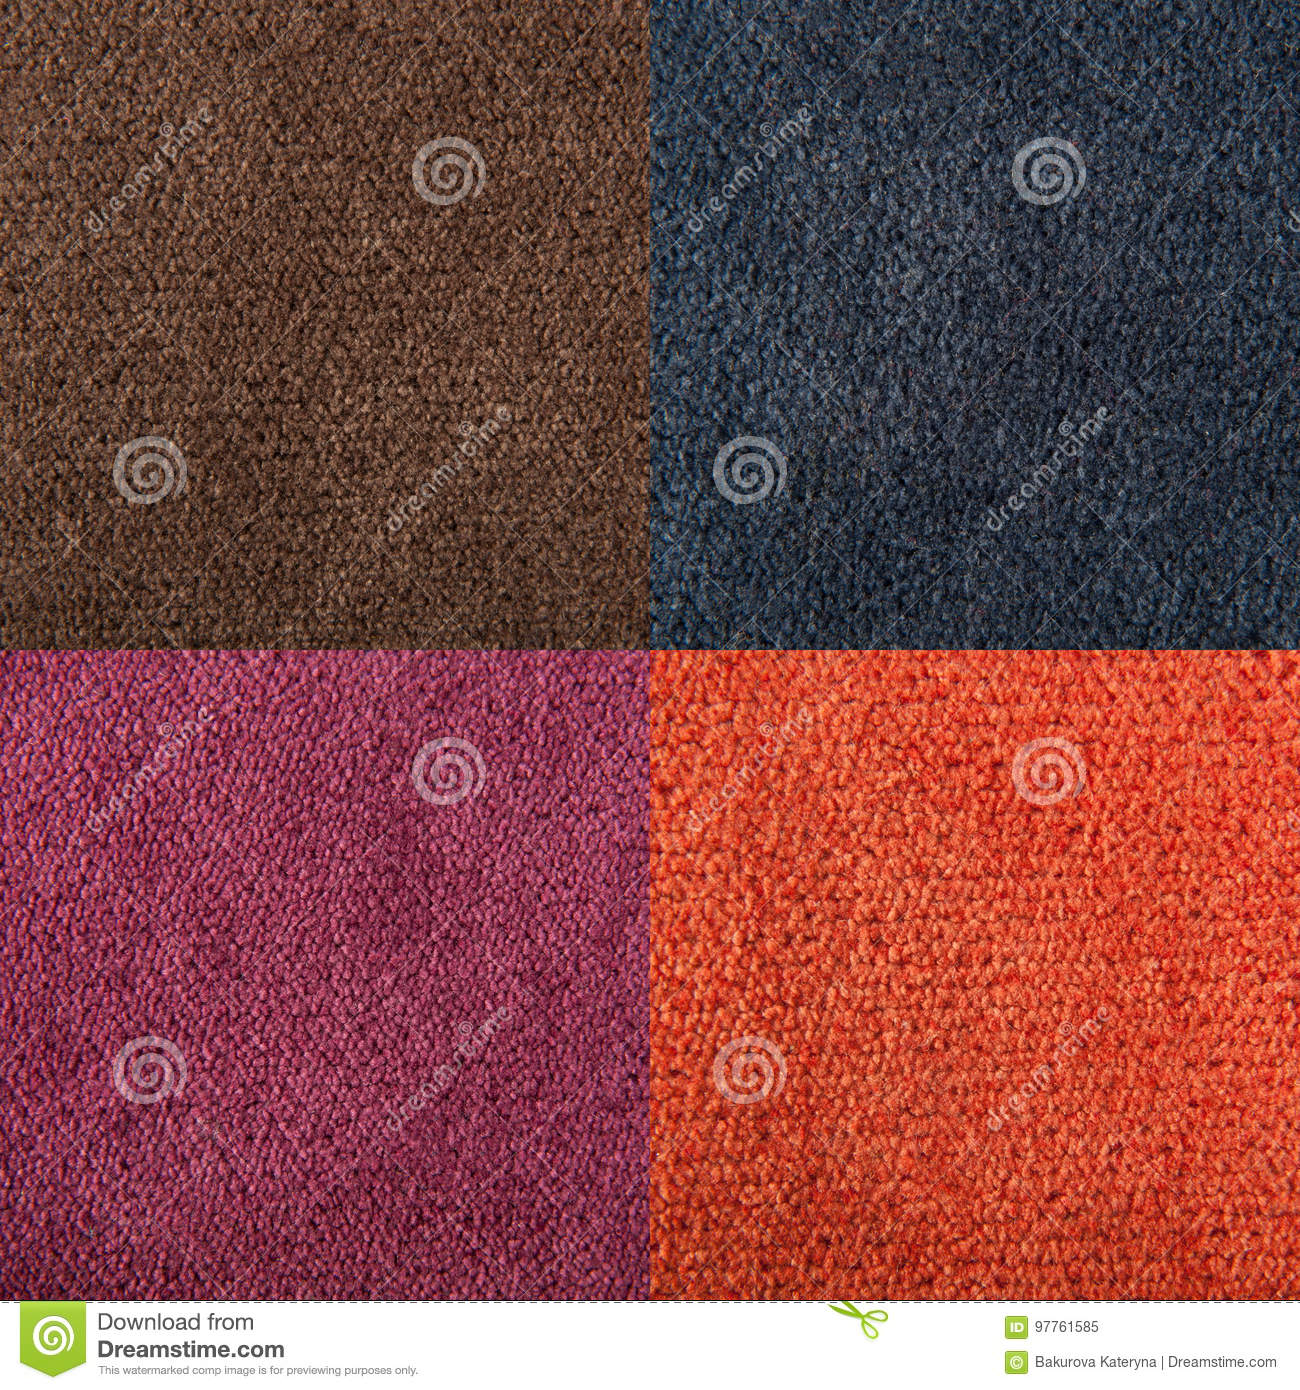 fabric texture orange, brown, blue, magenta carpeting for background